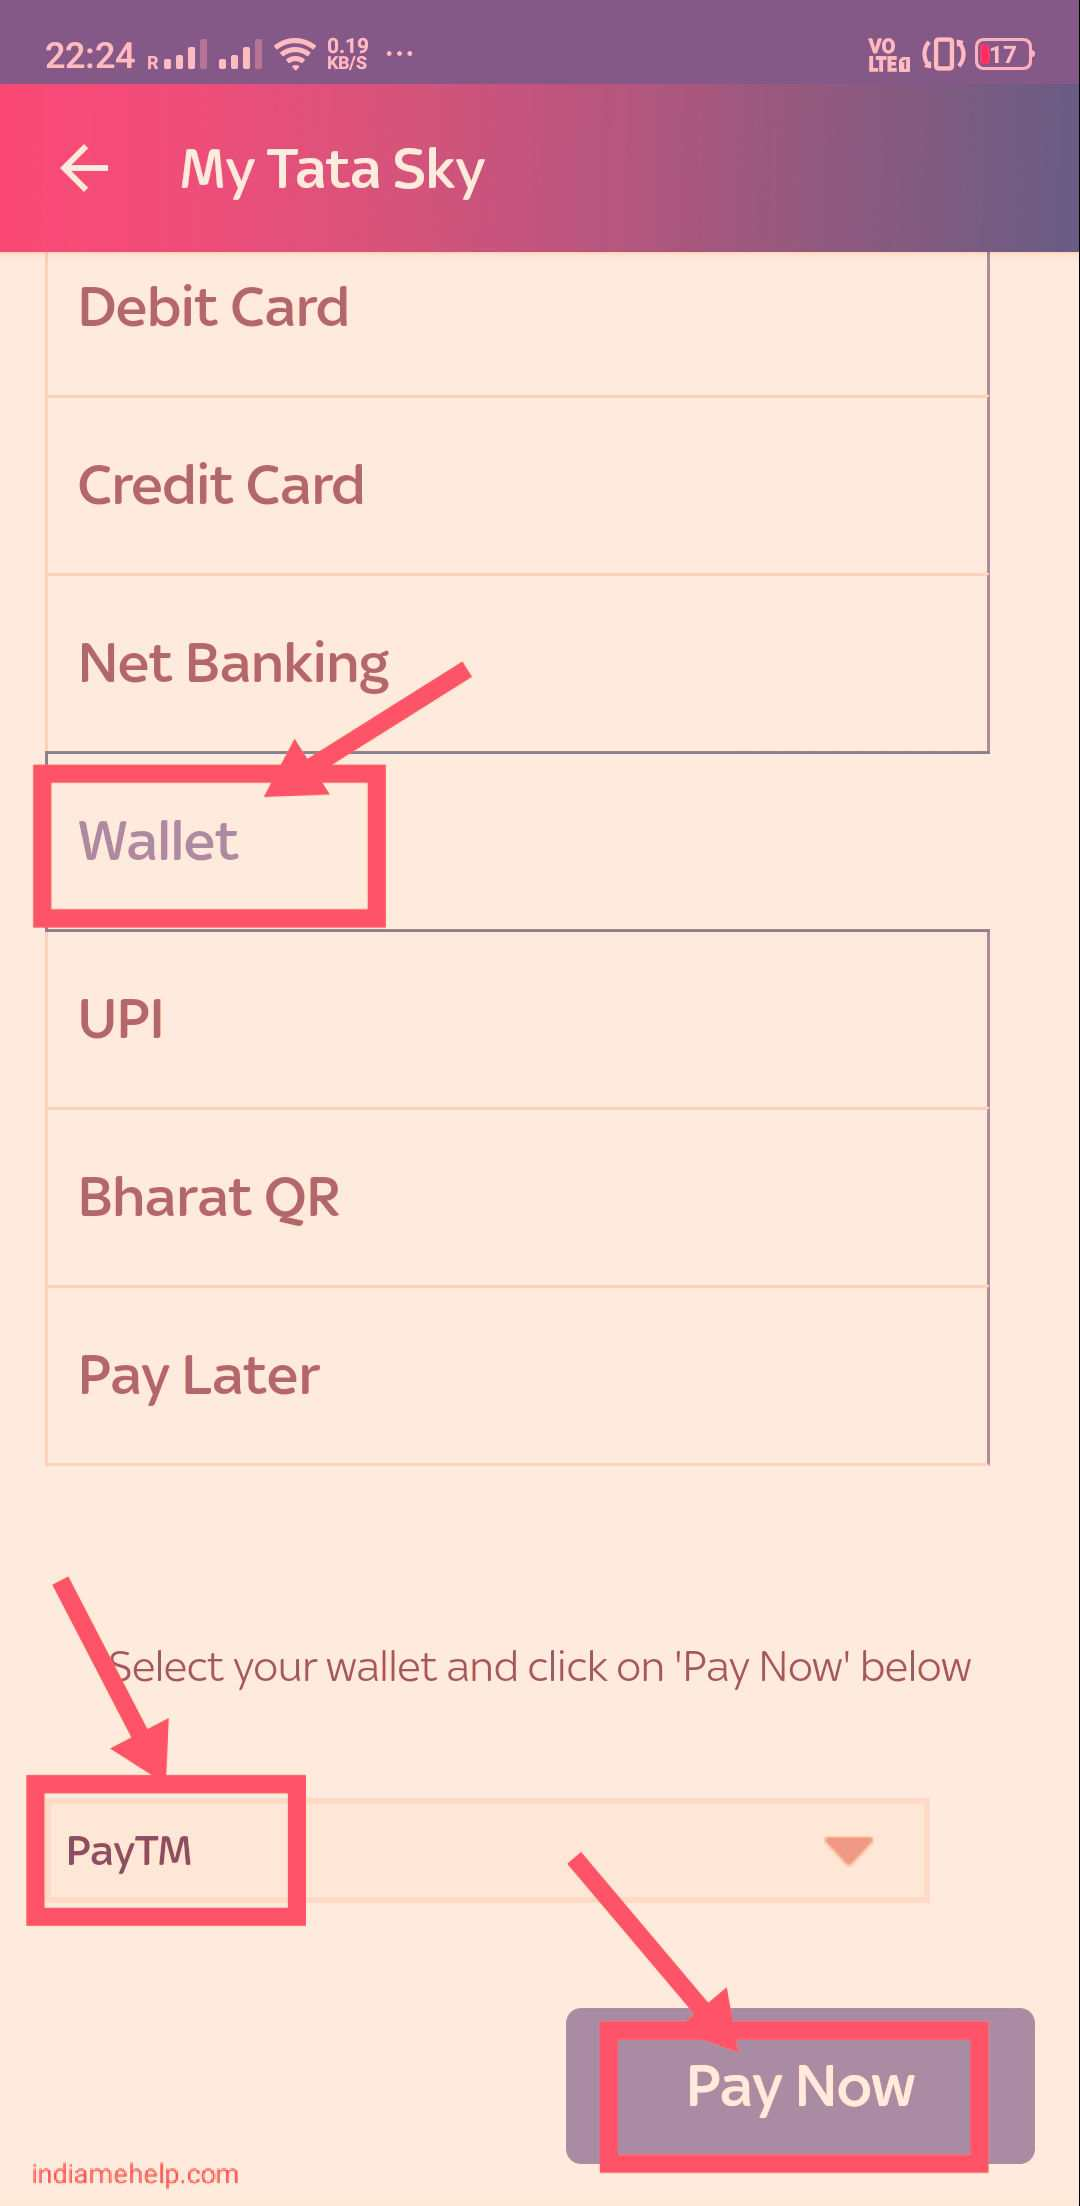 select wallet